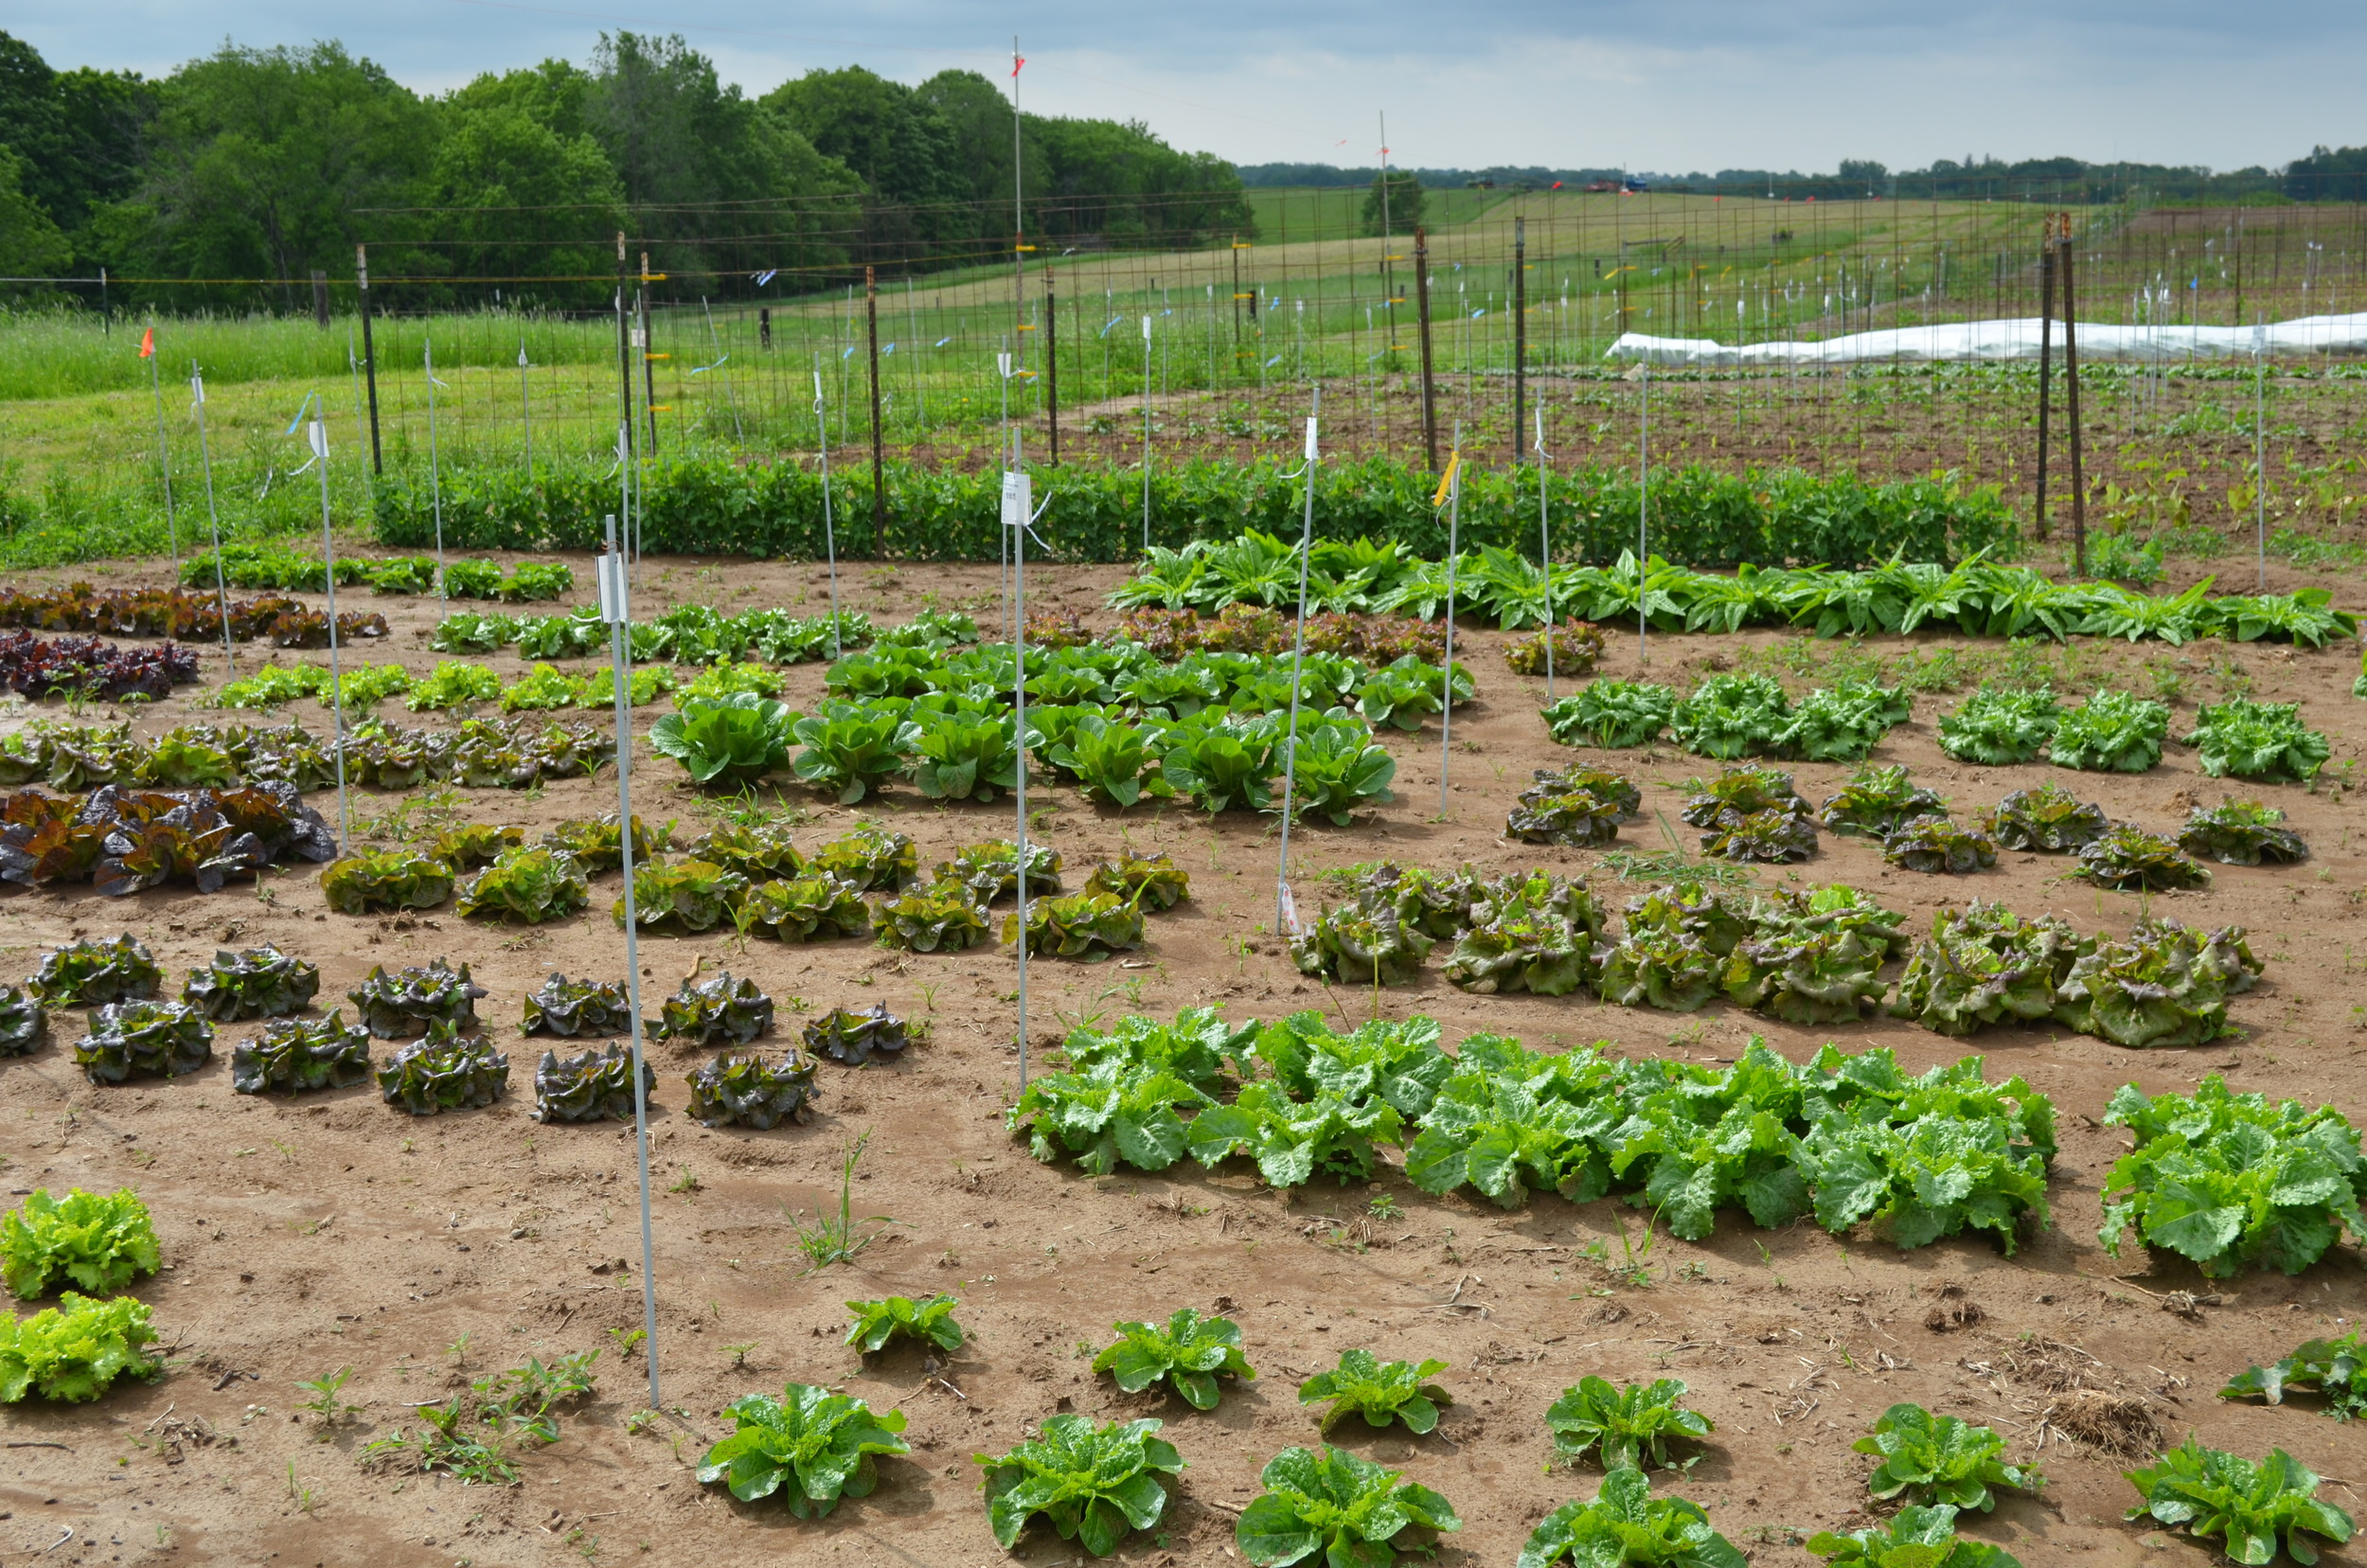 FIelds of plenty (of lettuce) here at Heritage Farm